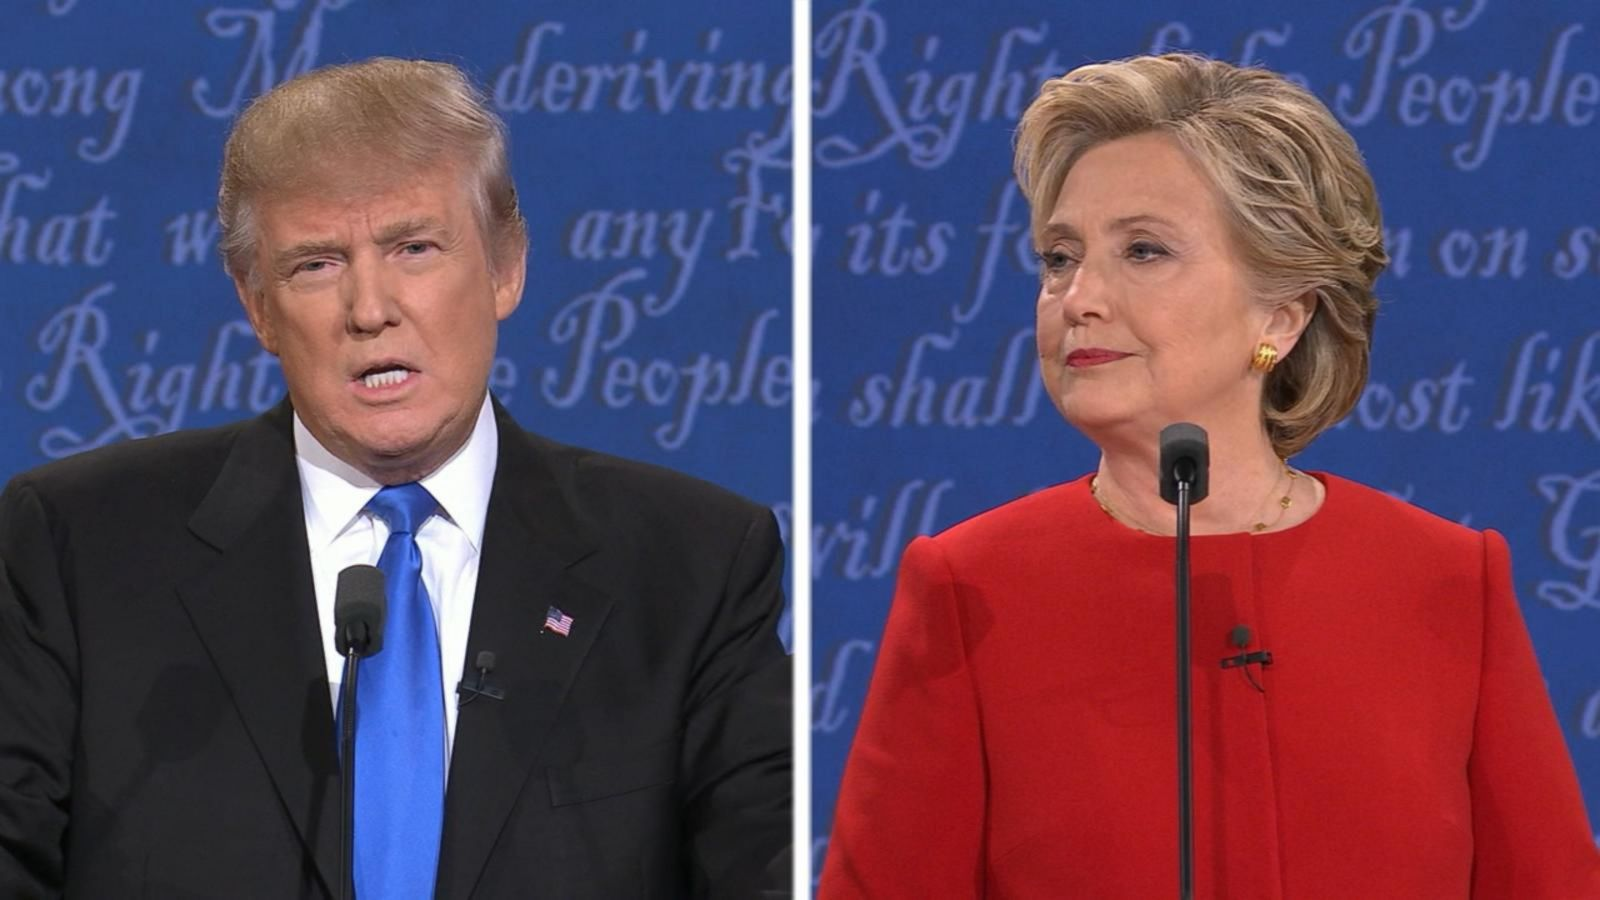 VIDEO: Hillary Clinton, Donald Trump Discuss Their Plans to Create Jobs in the US